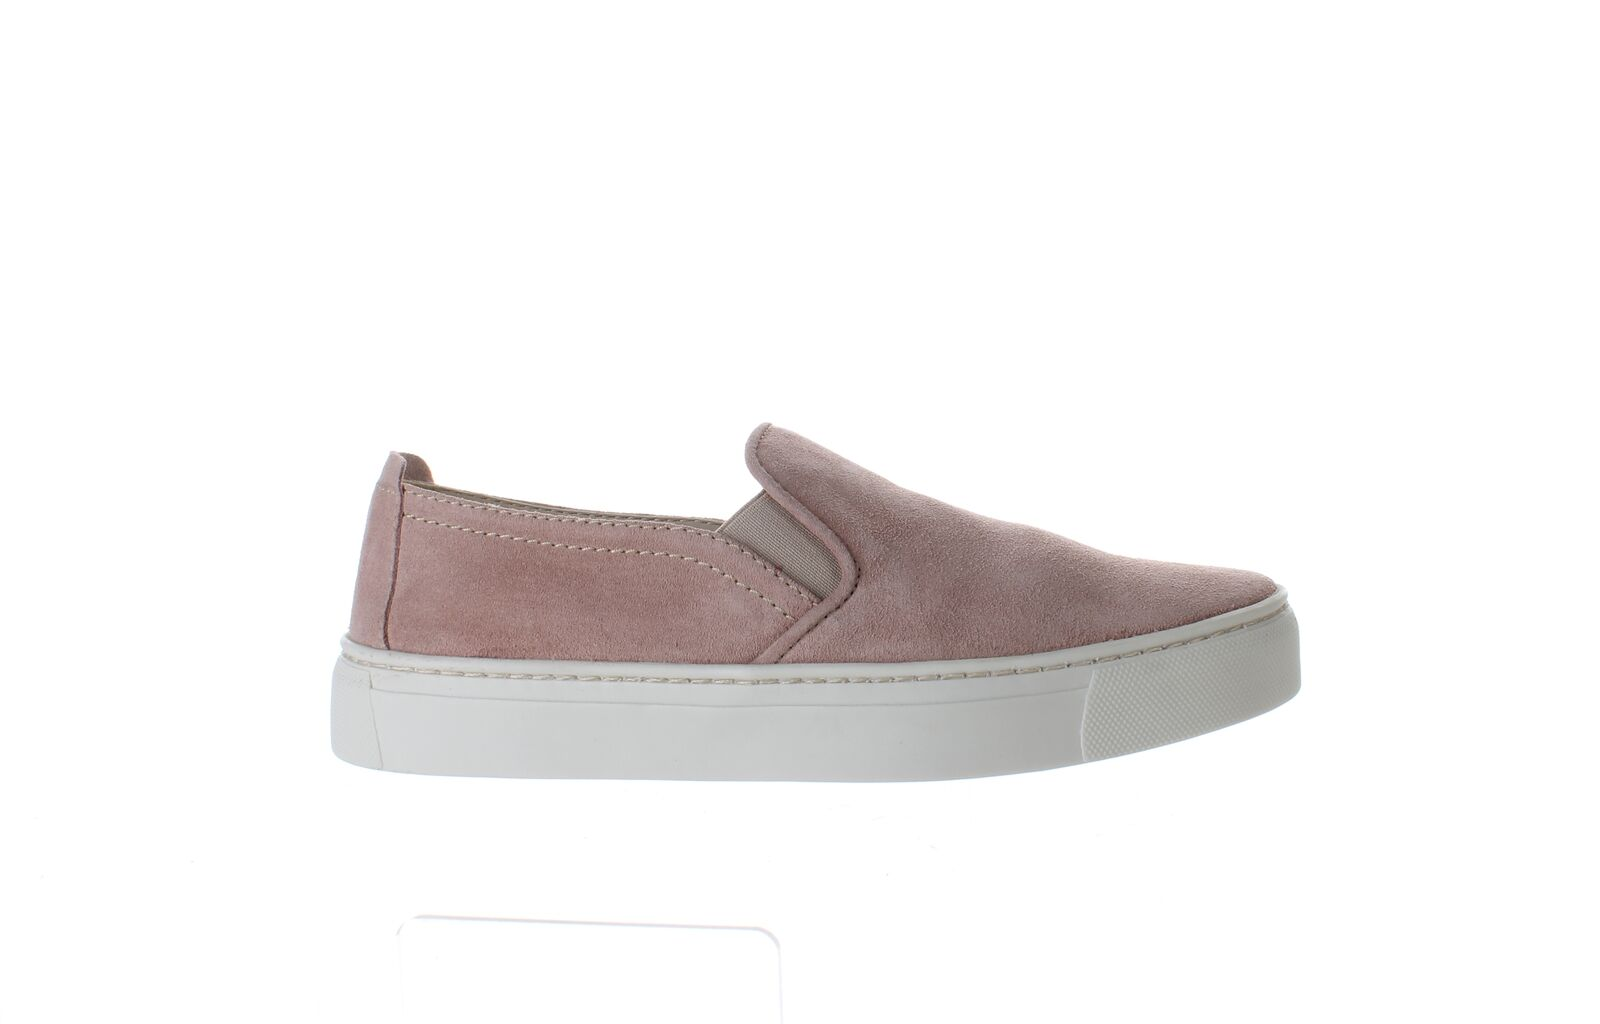 The FLEXX Womens Sneak Name Rose Suede Casual Flats Size 6